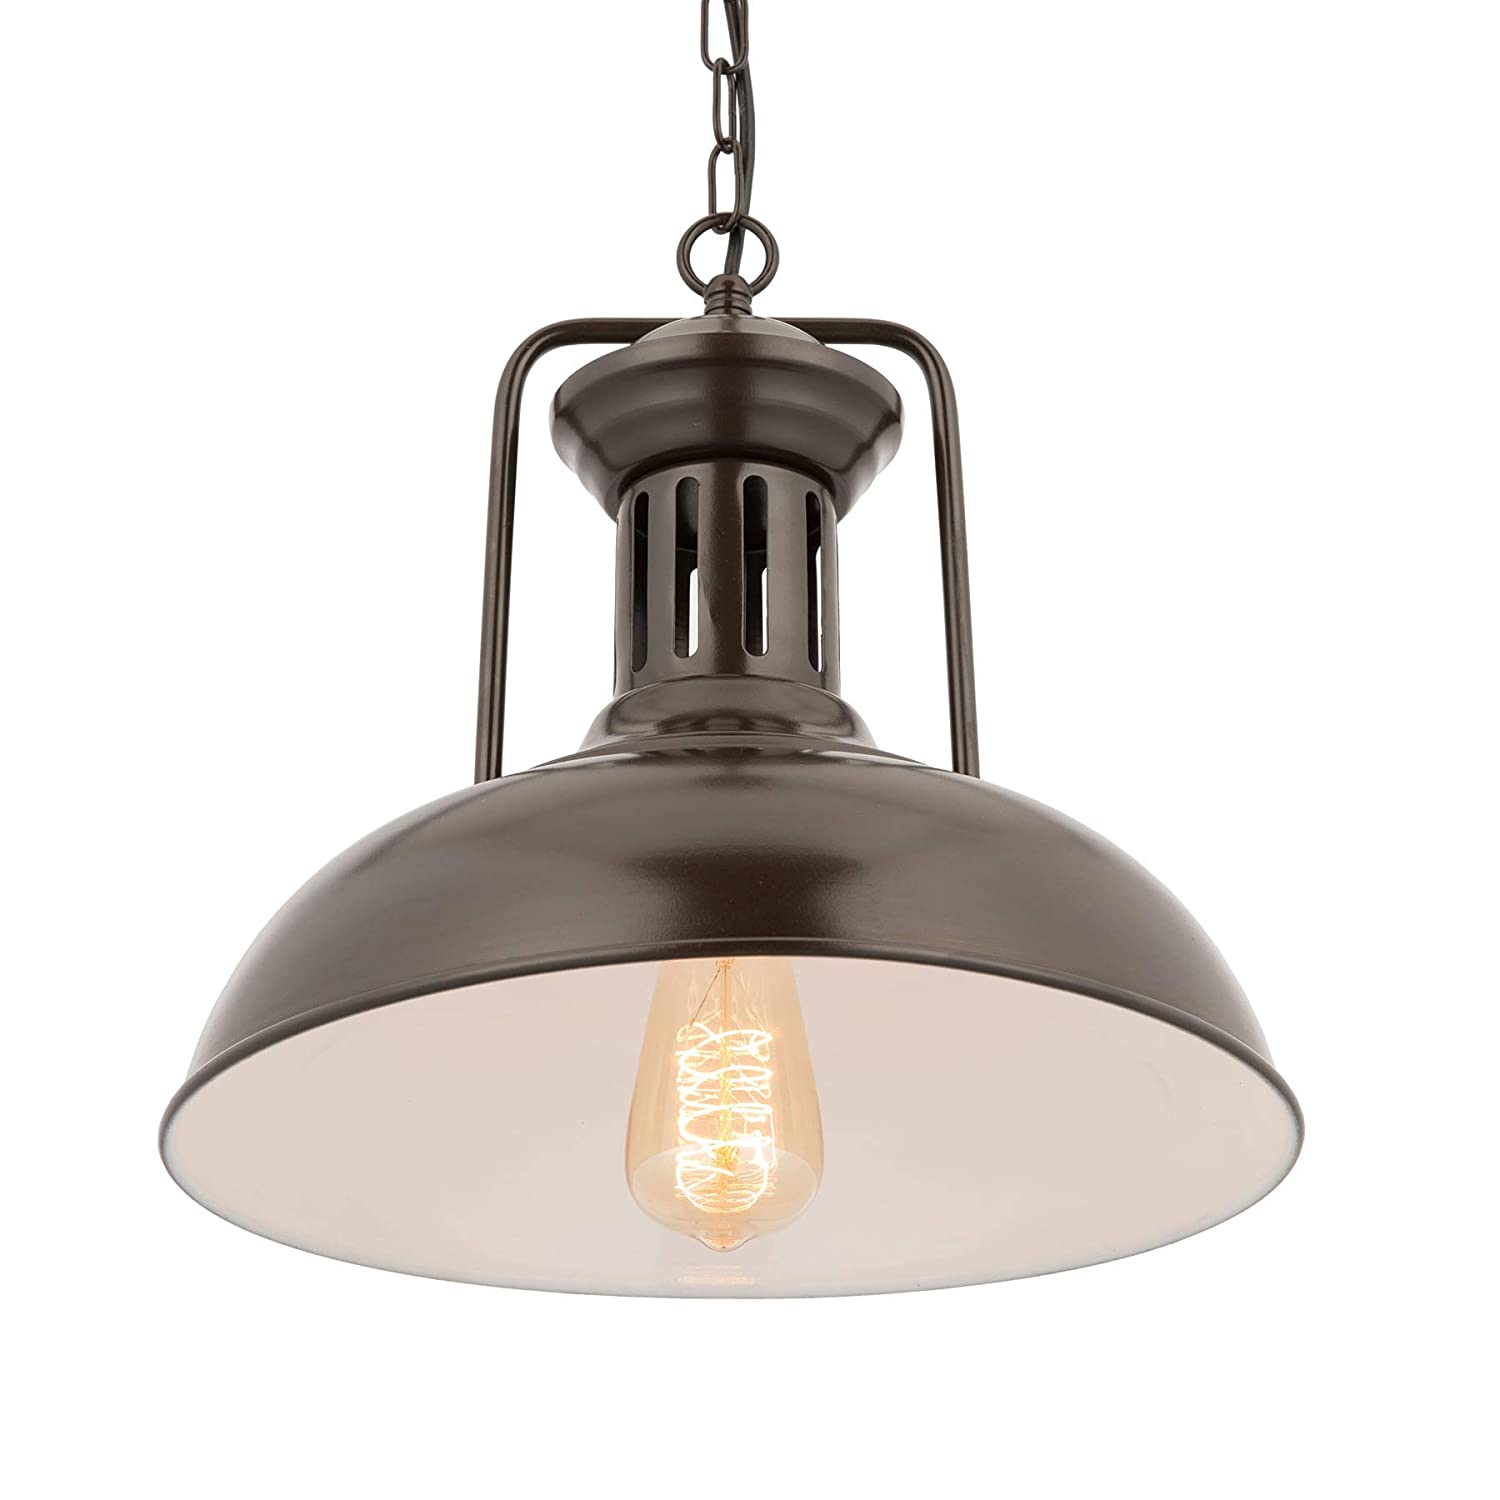 CO-Z Oil Rubbed Bronze Industrial Farmhouse Pendant Light Large Hanging Ceiling Lighting Fixture for Kitchen